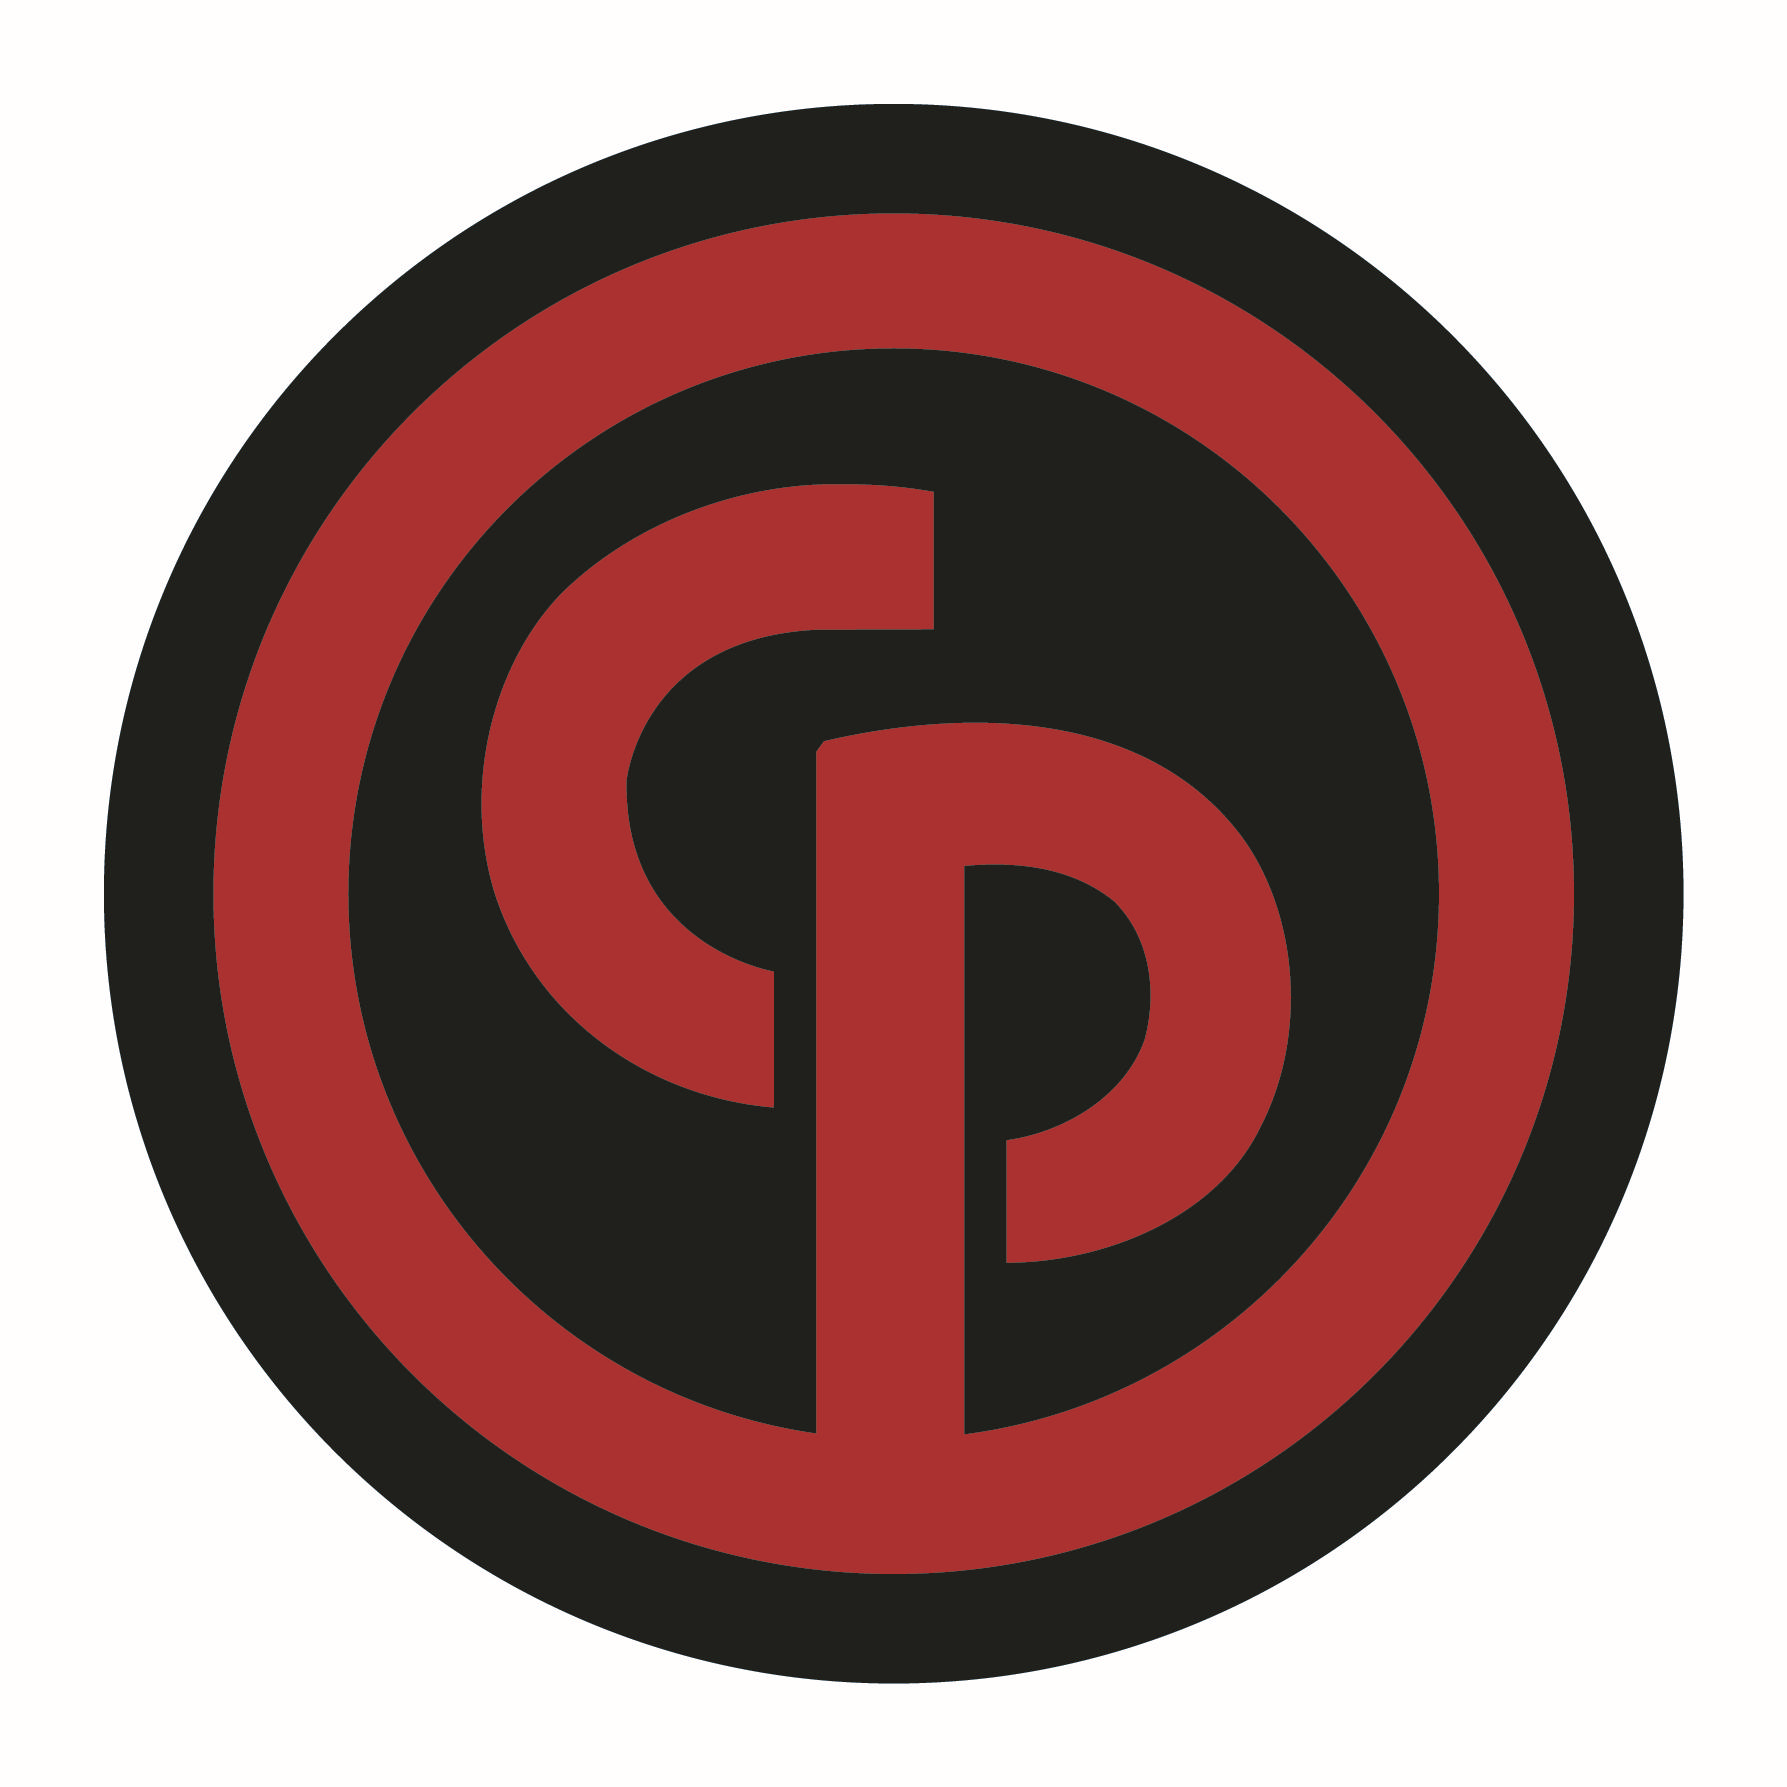 cp-product-logo-red.jpg